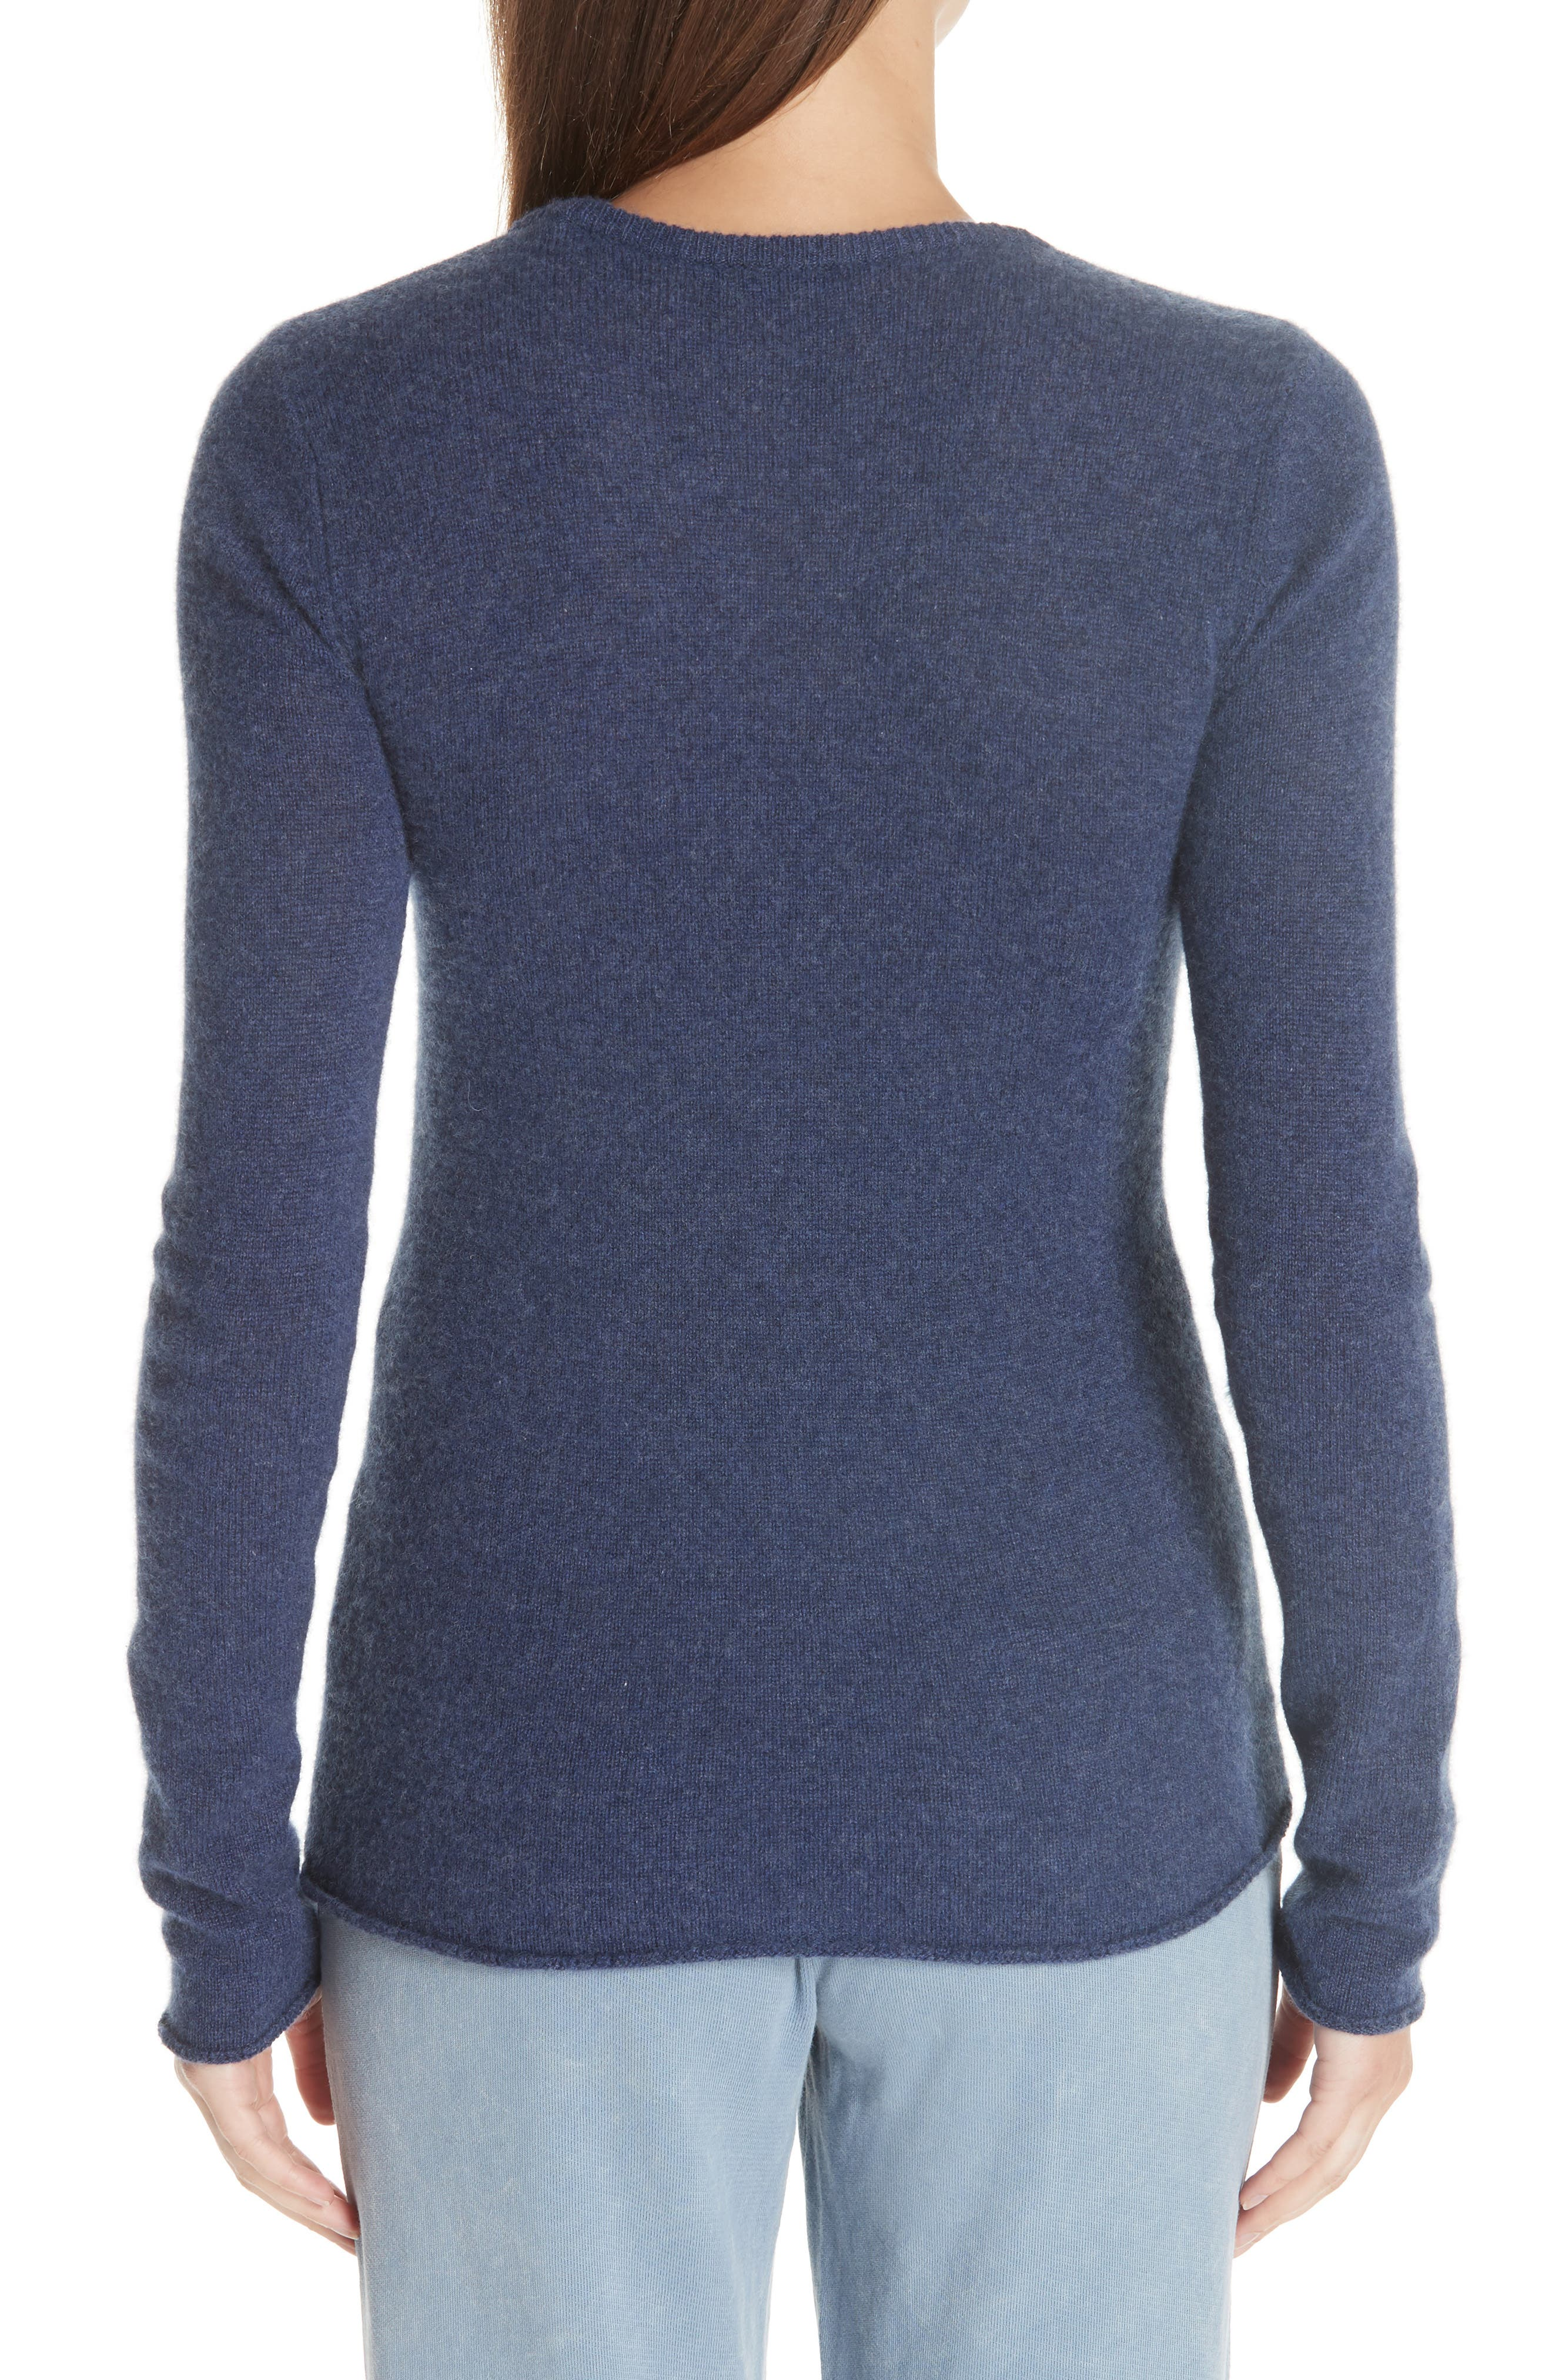 Cashmere Sweater,                             Alternate thumbnail 2, color,                             HEATHER NAVY